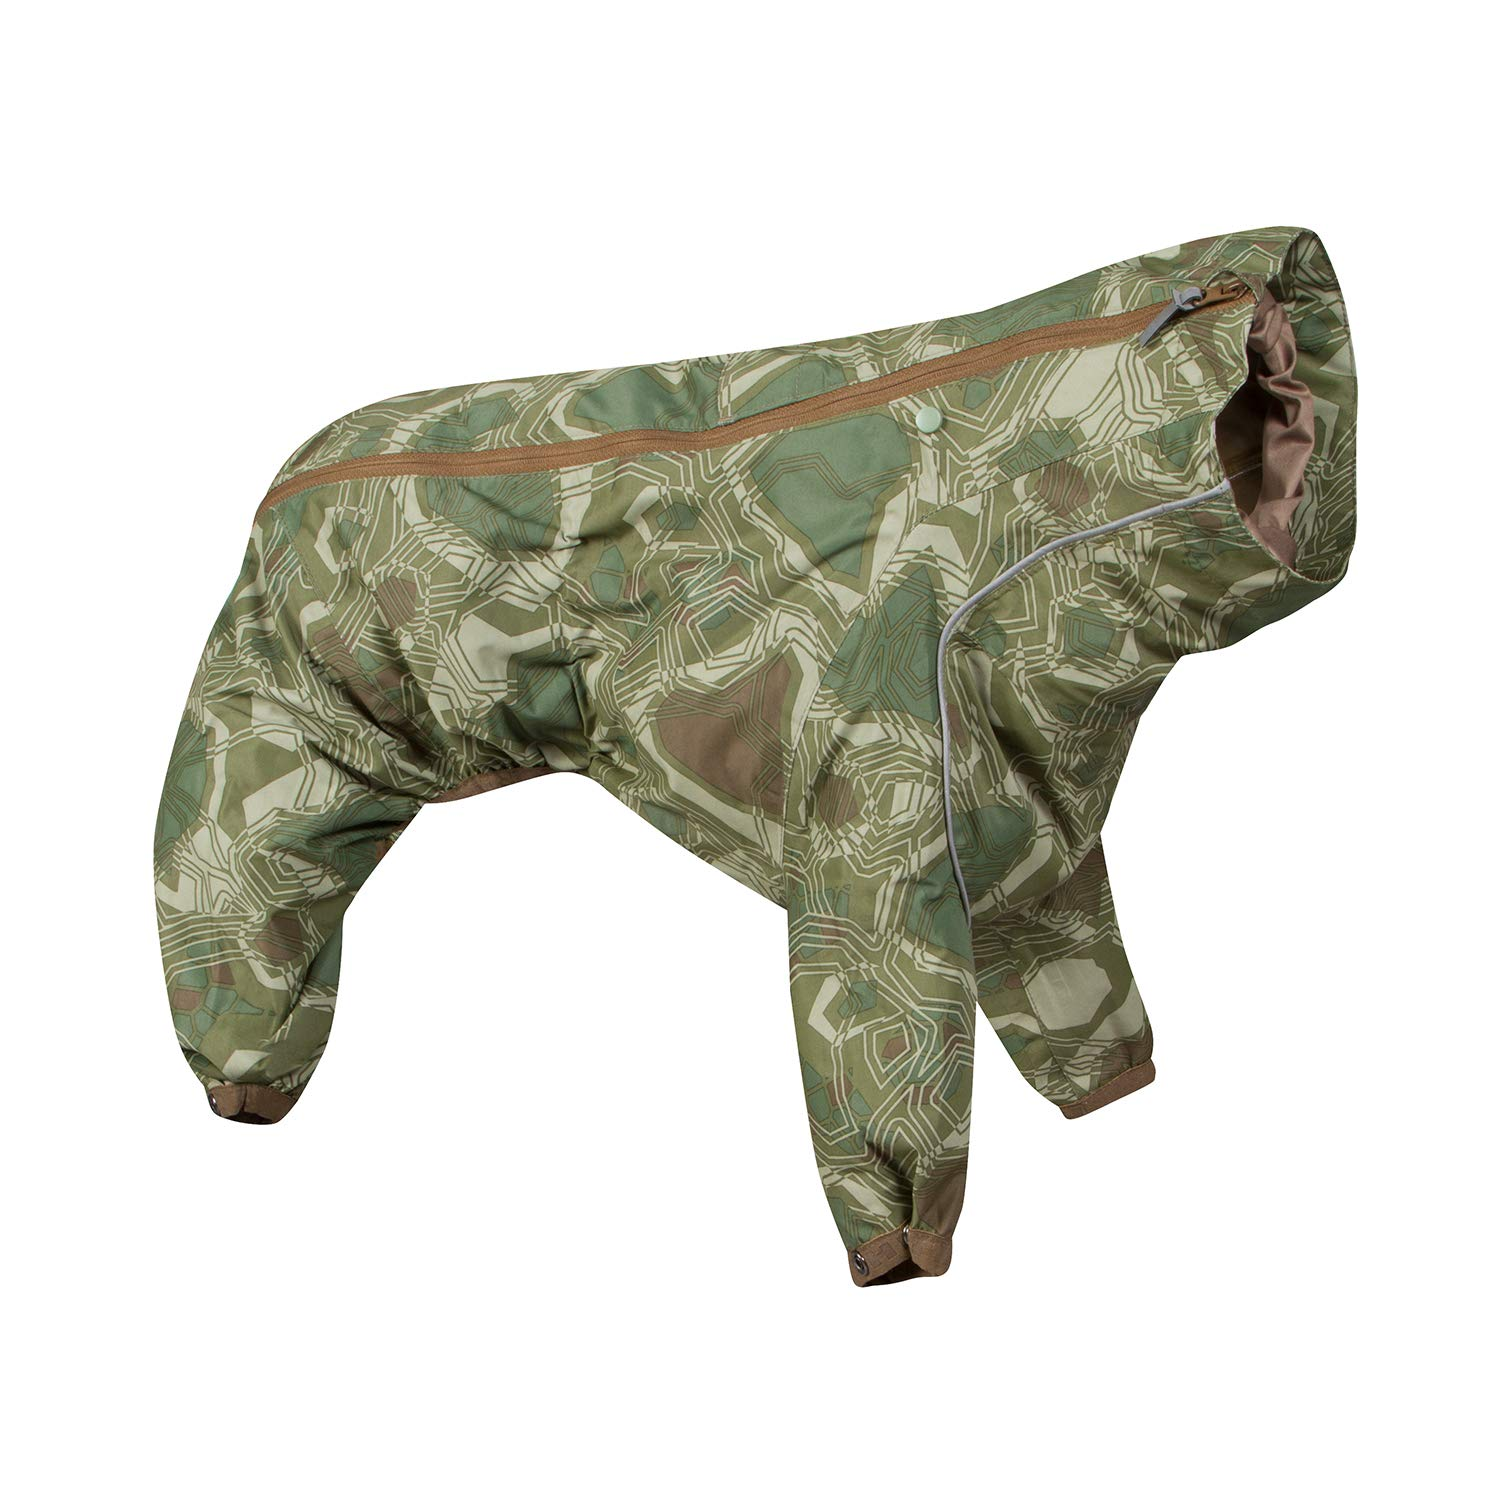 Hurtta Downpour Suit, Weatherproof Dog Rain/Snow Coat, Green Camo, 18M